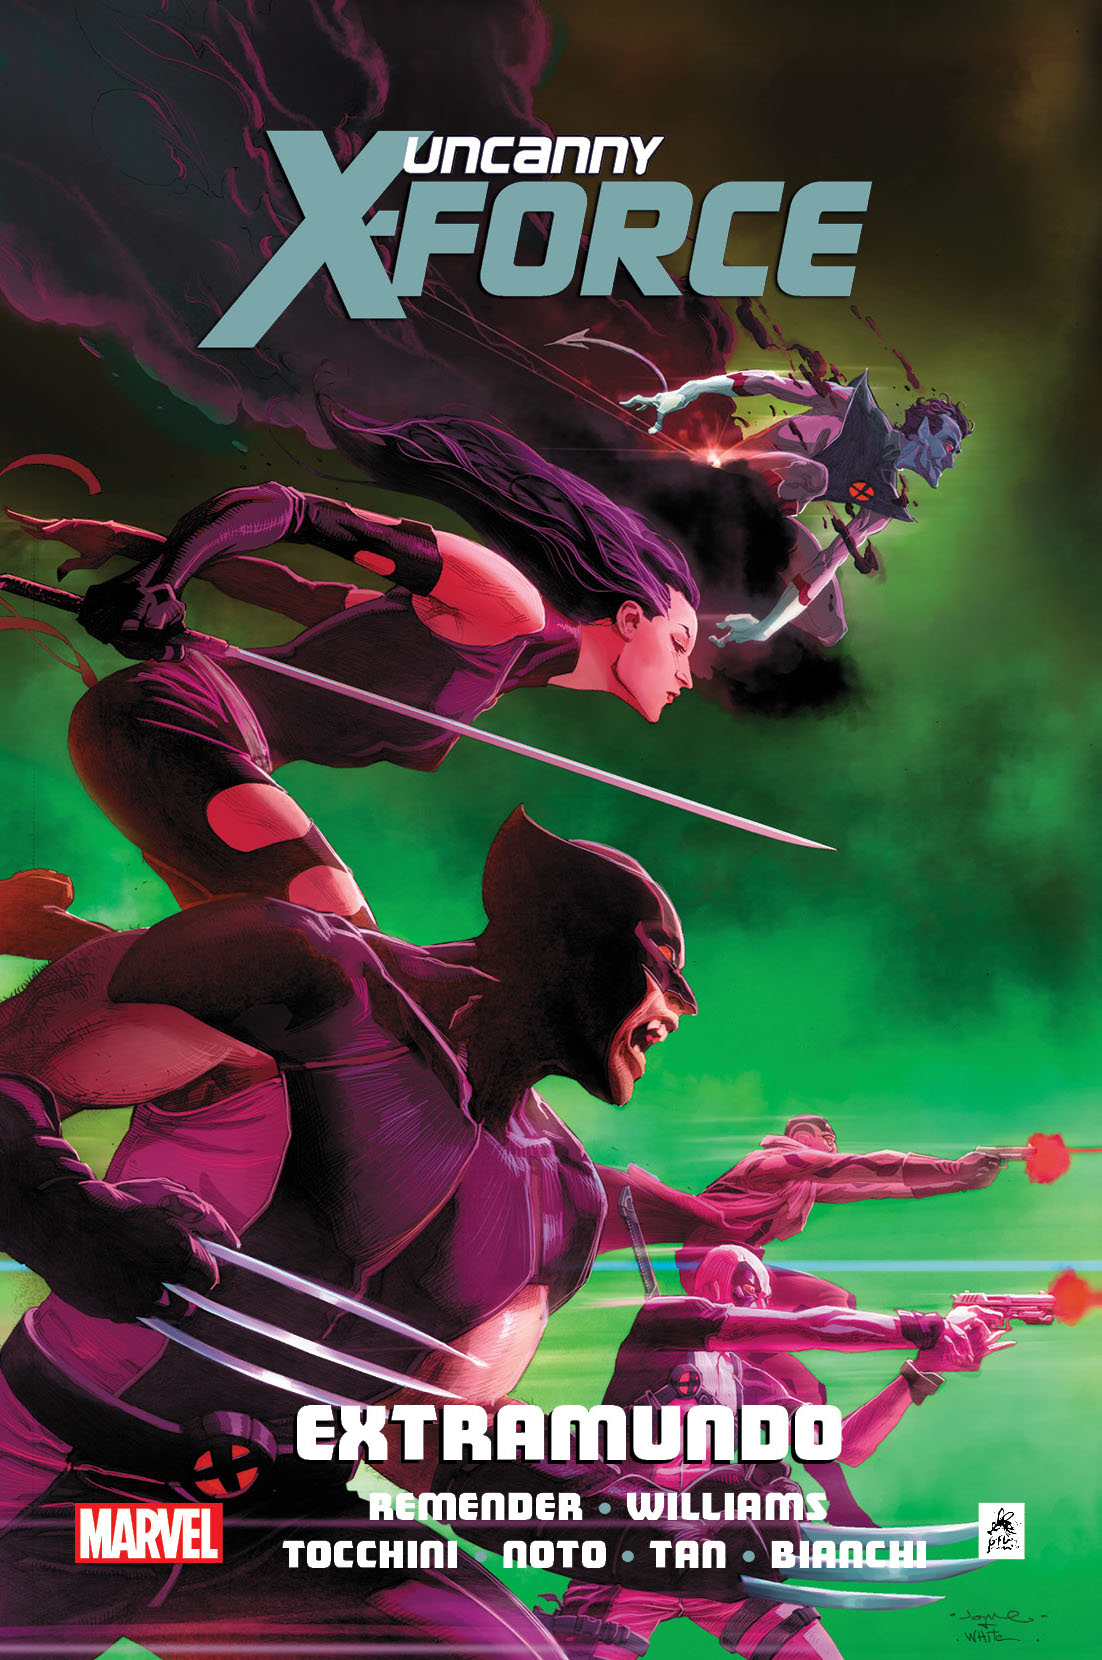 UNCANNY X-FORCE Vol. 3: EXTRAMUNDO